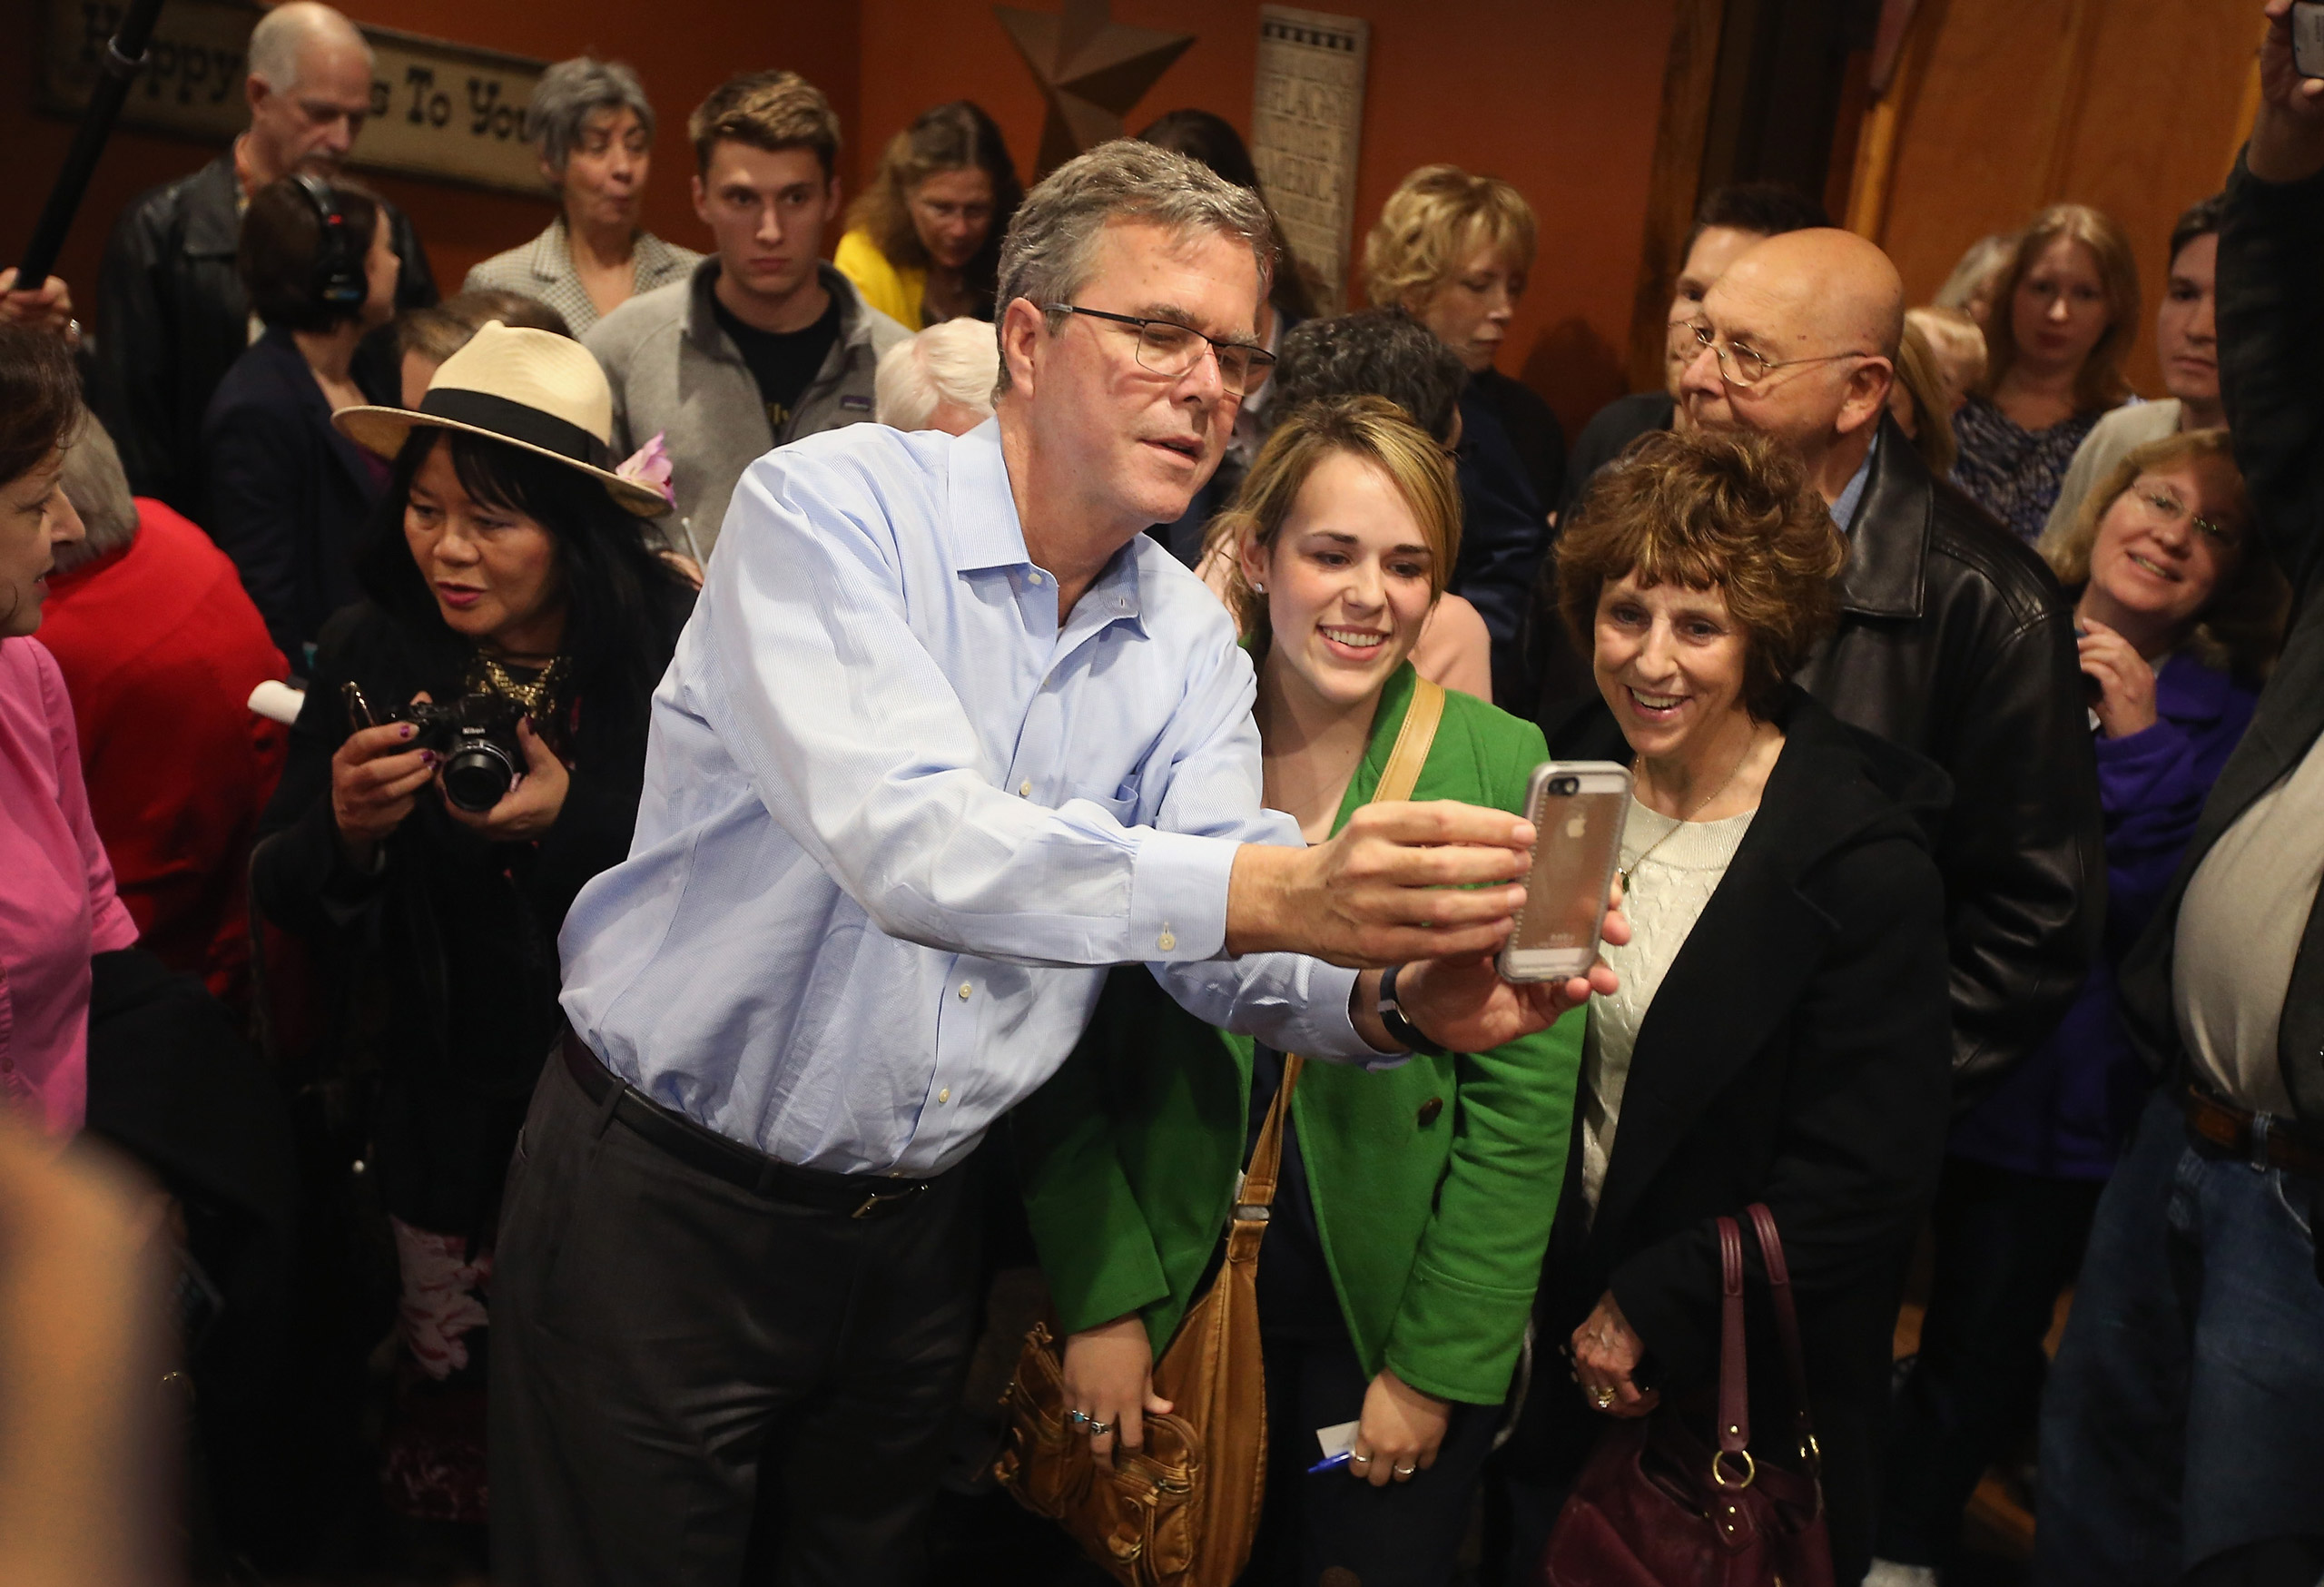 Jeb Bush takes a selfie with Iowa residents after speaking at a Pizza Ranch restaurant in Cedar Rapids, Iowa, on March 7, 2015.